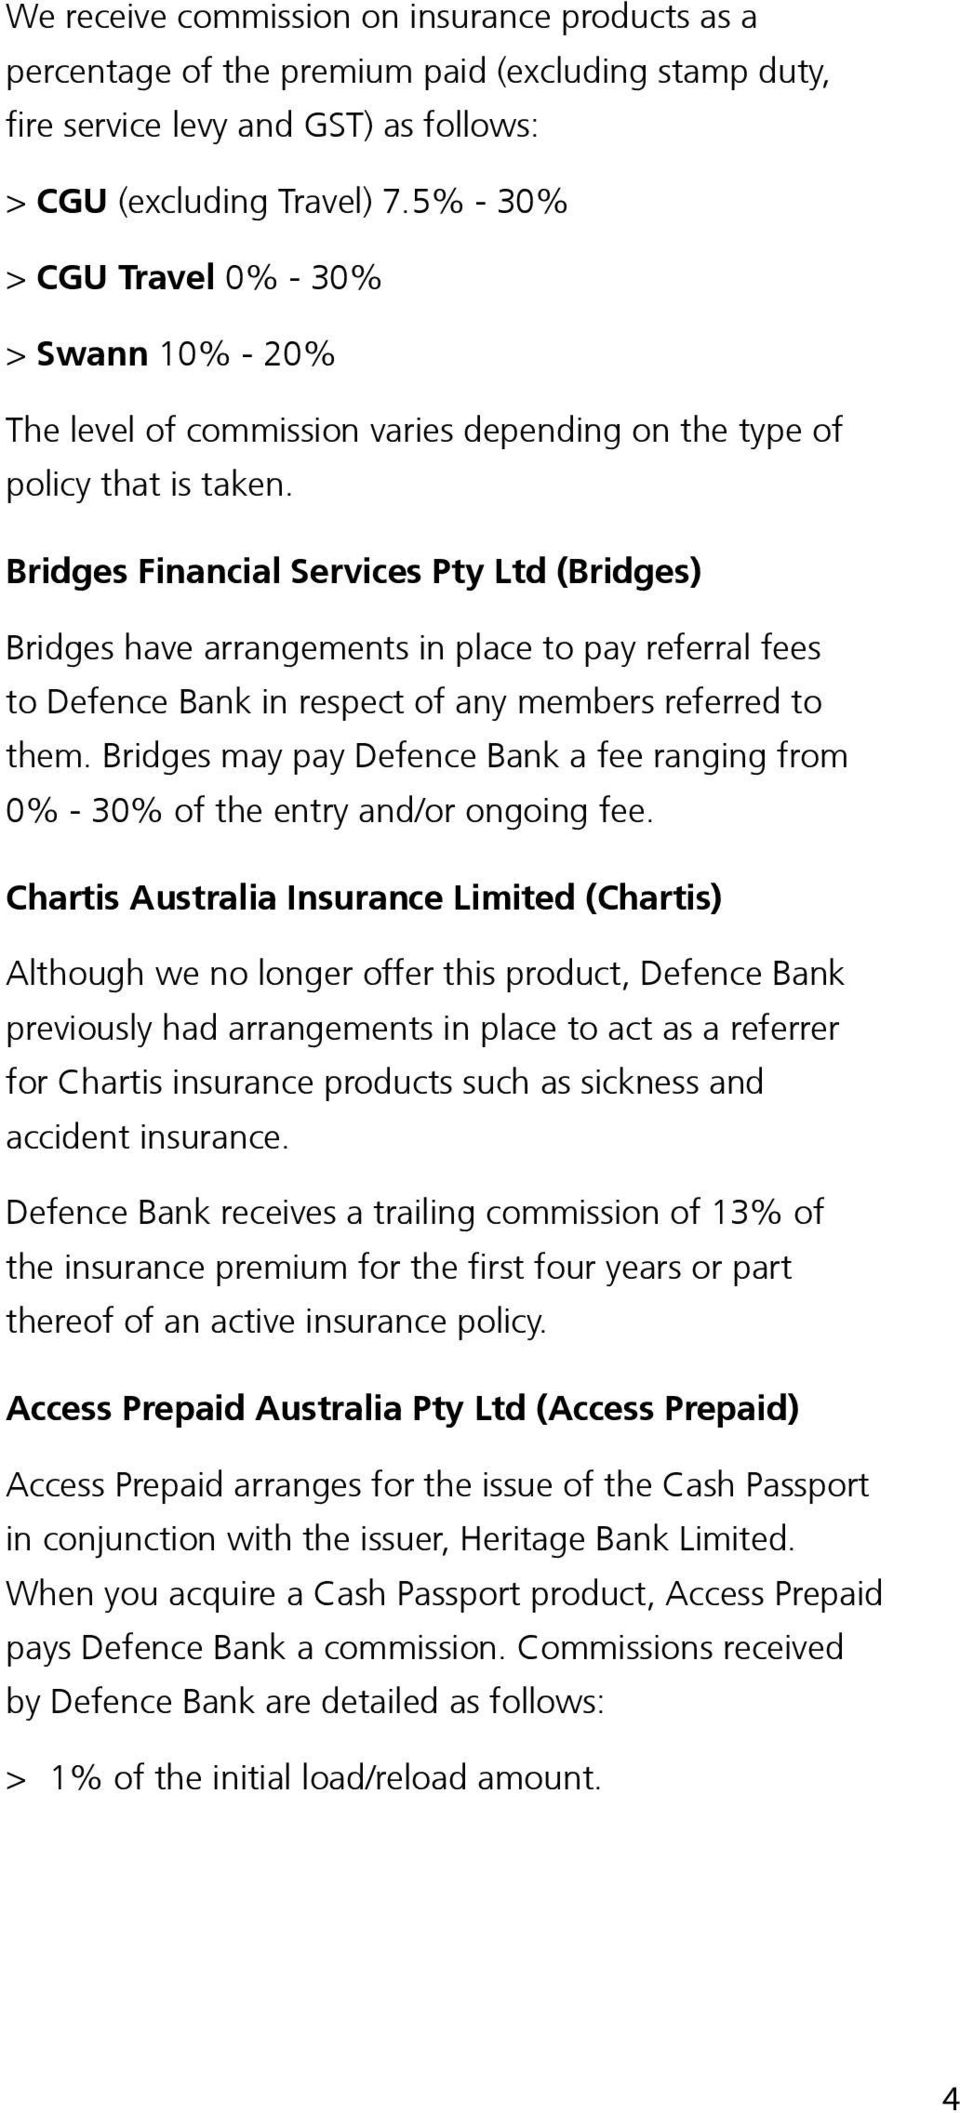 Bridges Financial Services Pty Ltd (Bridges) Bridges have arrangements in place to pay referral fees to Defence Bank in respect of any members referred to them.